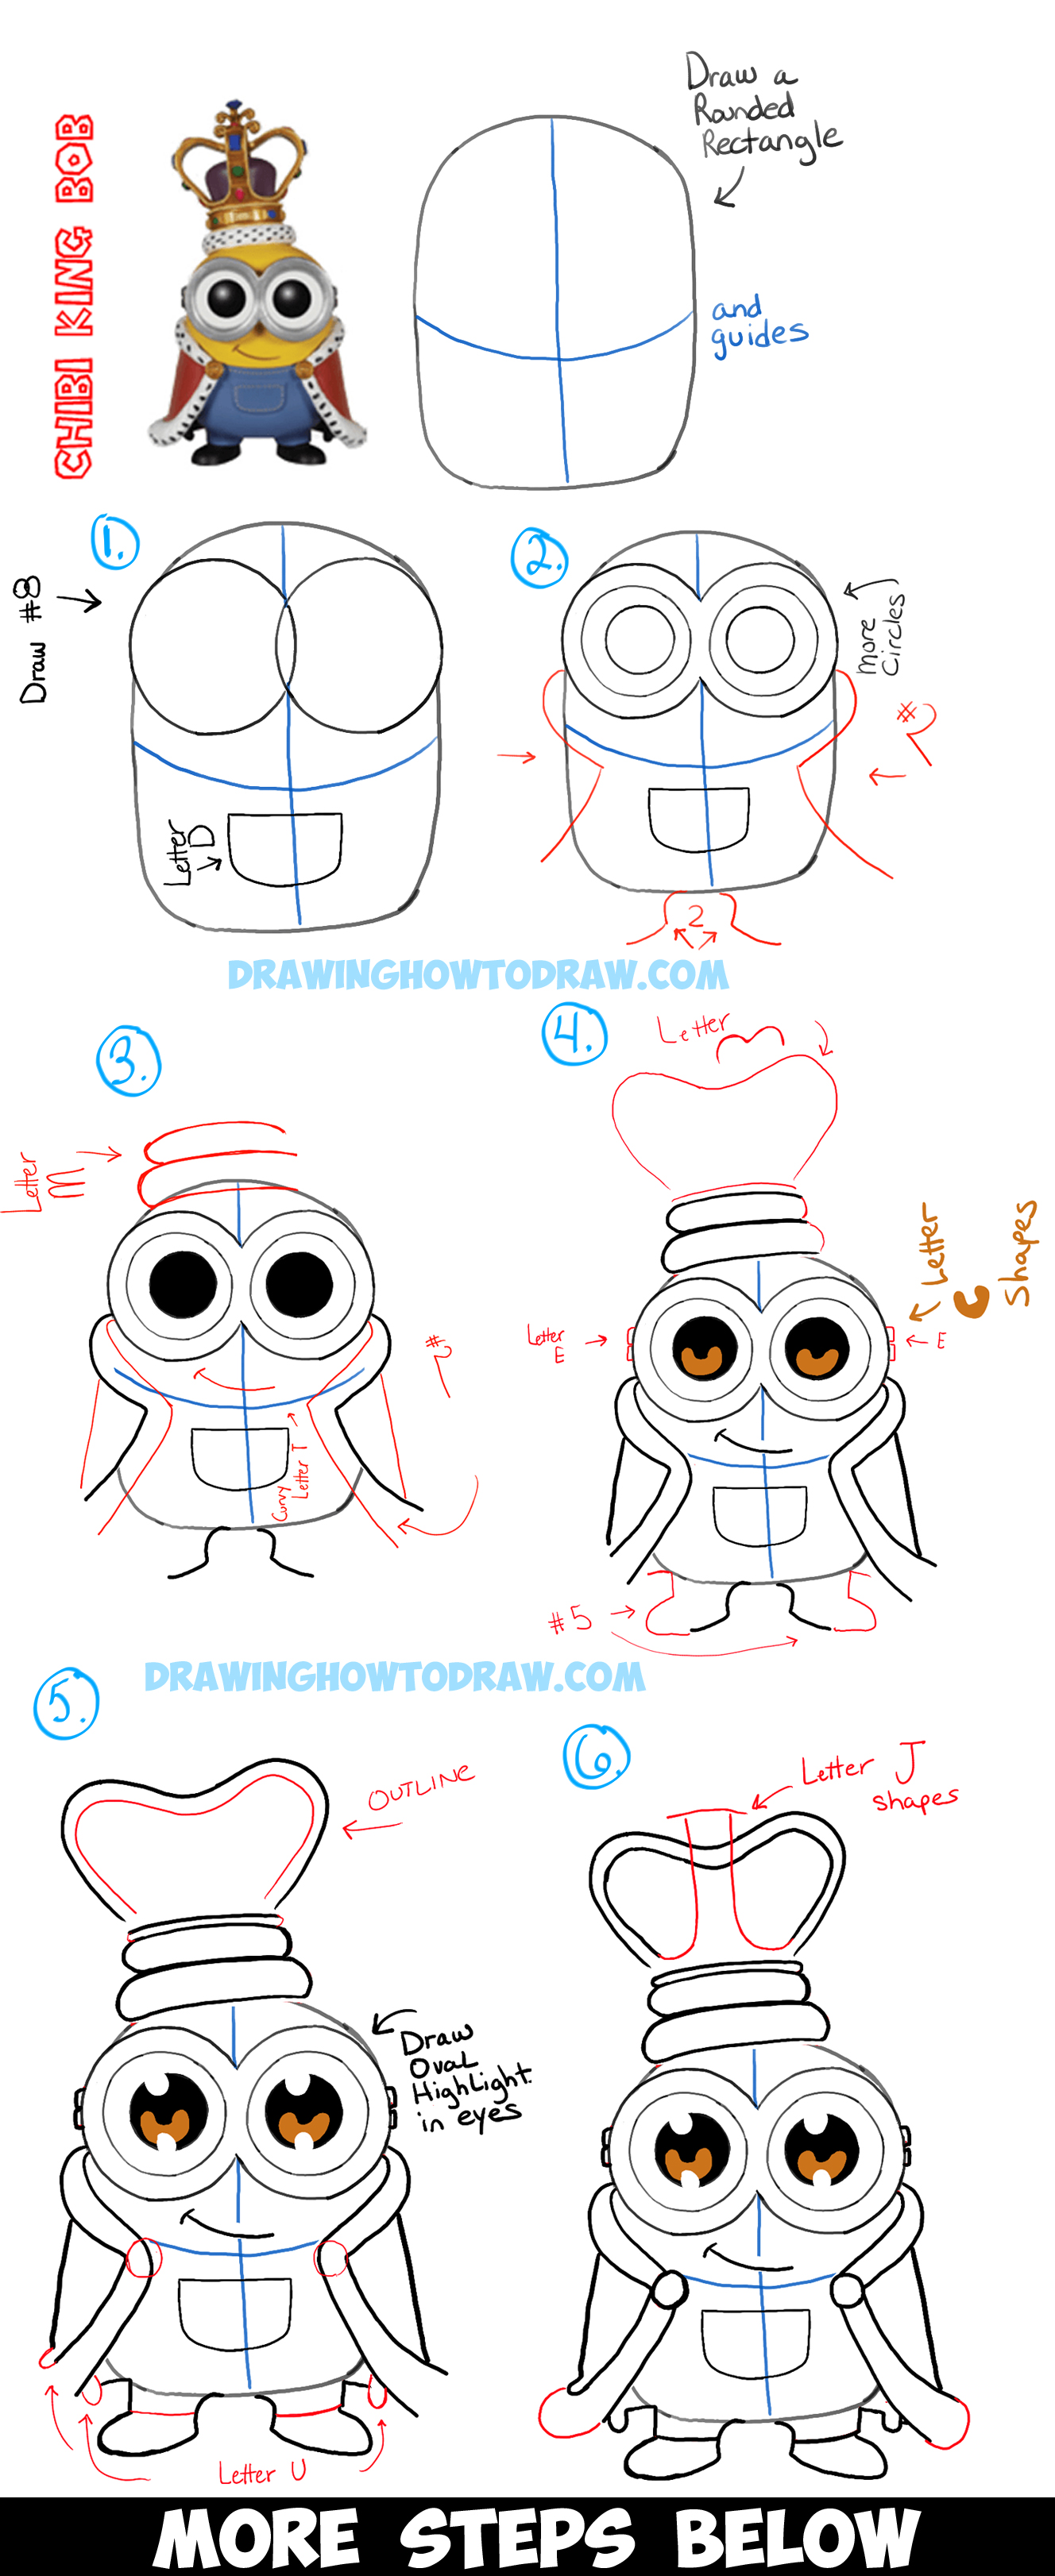 Show me how to draw a minion - How To Draw Cute Chibi King Bob From The Minions Movie With Easy Tutorial